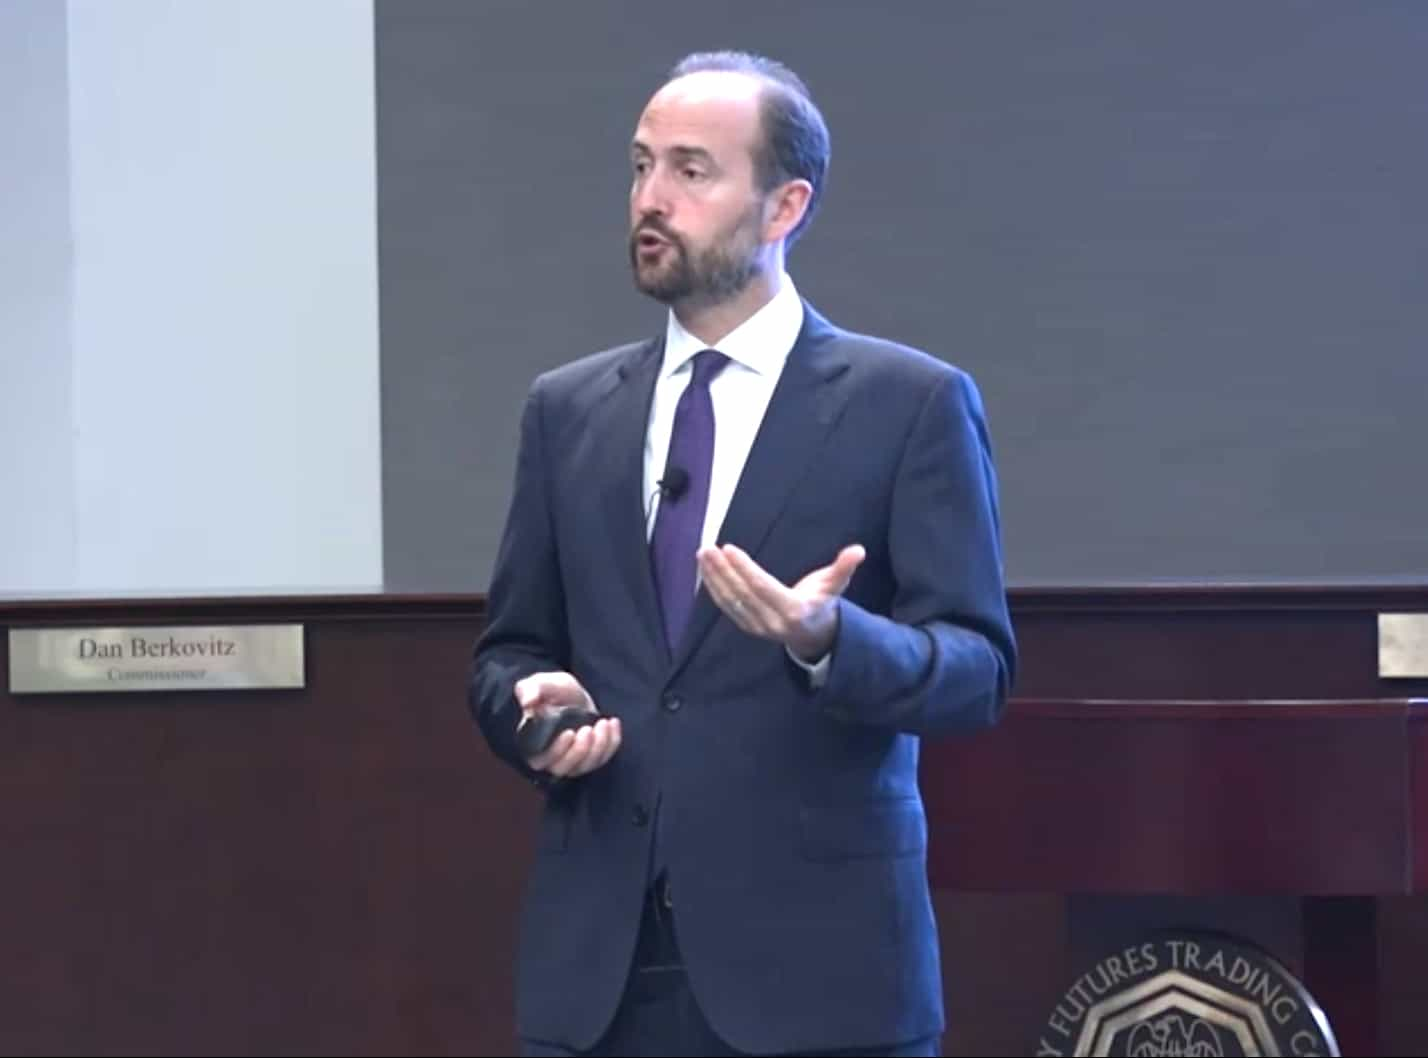 Tommaso Mancini-Griffoli from IMF Pitches Synthetic Central Bank Digital Currency